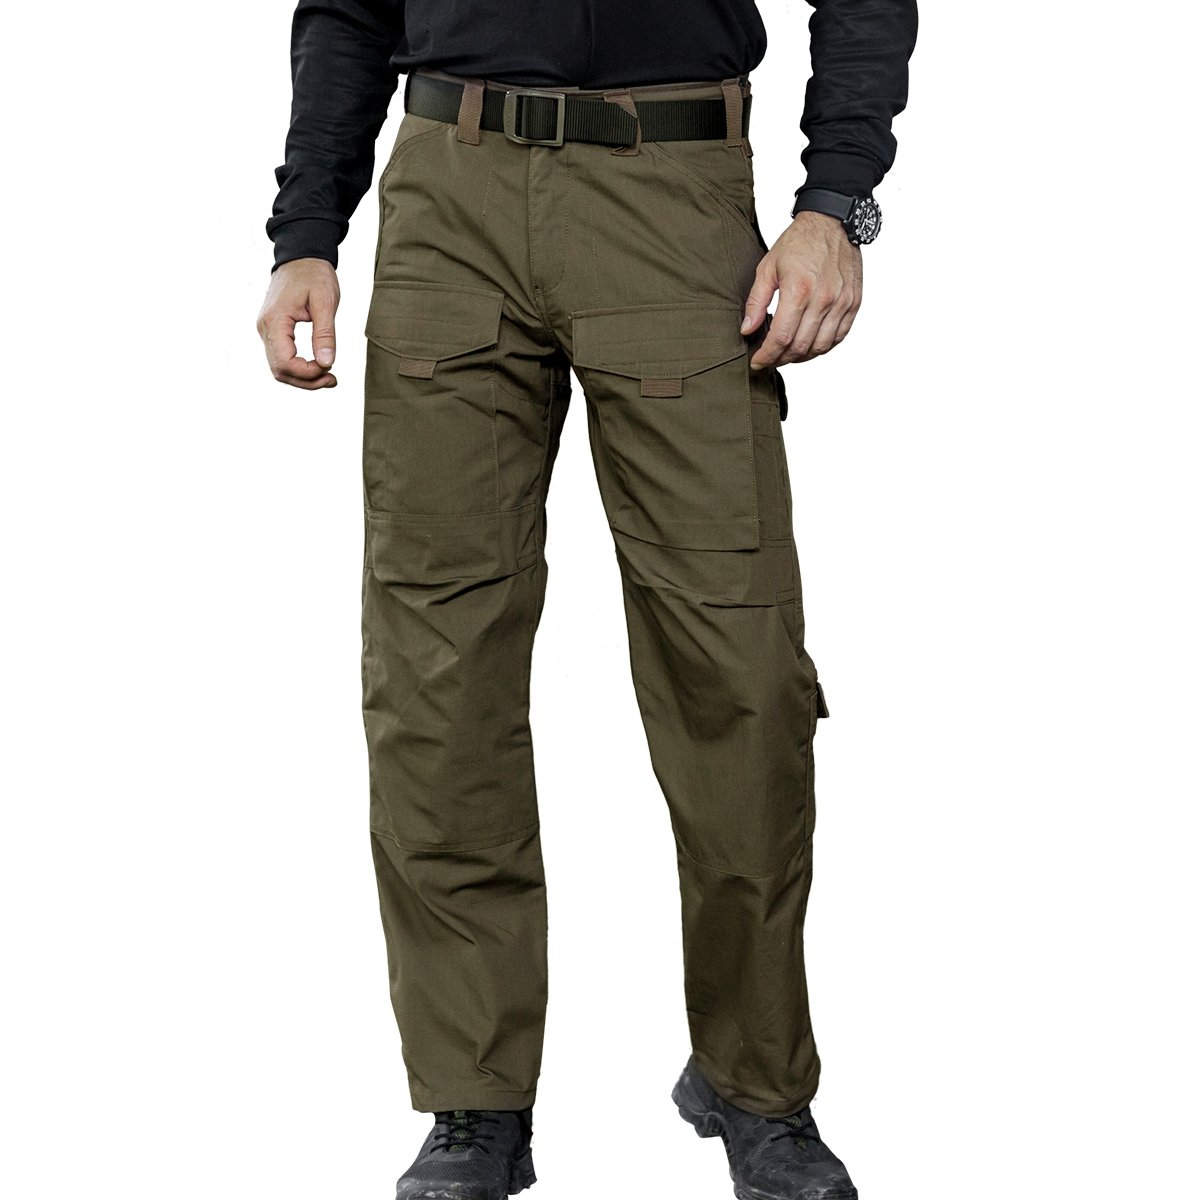 Men's Tactical Multi-Pocket Breathable Cargo Pants - DeluxeAdultCostumes.com